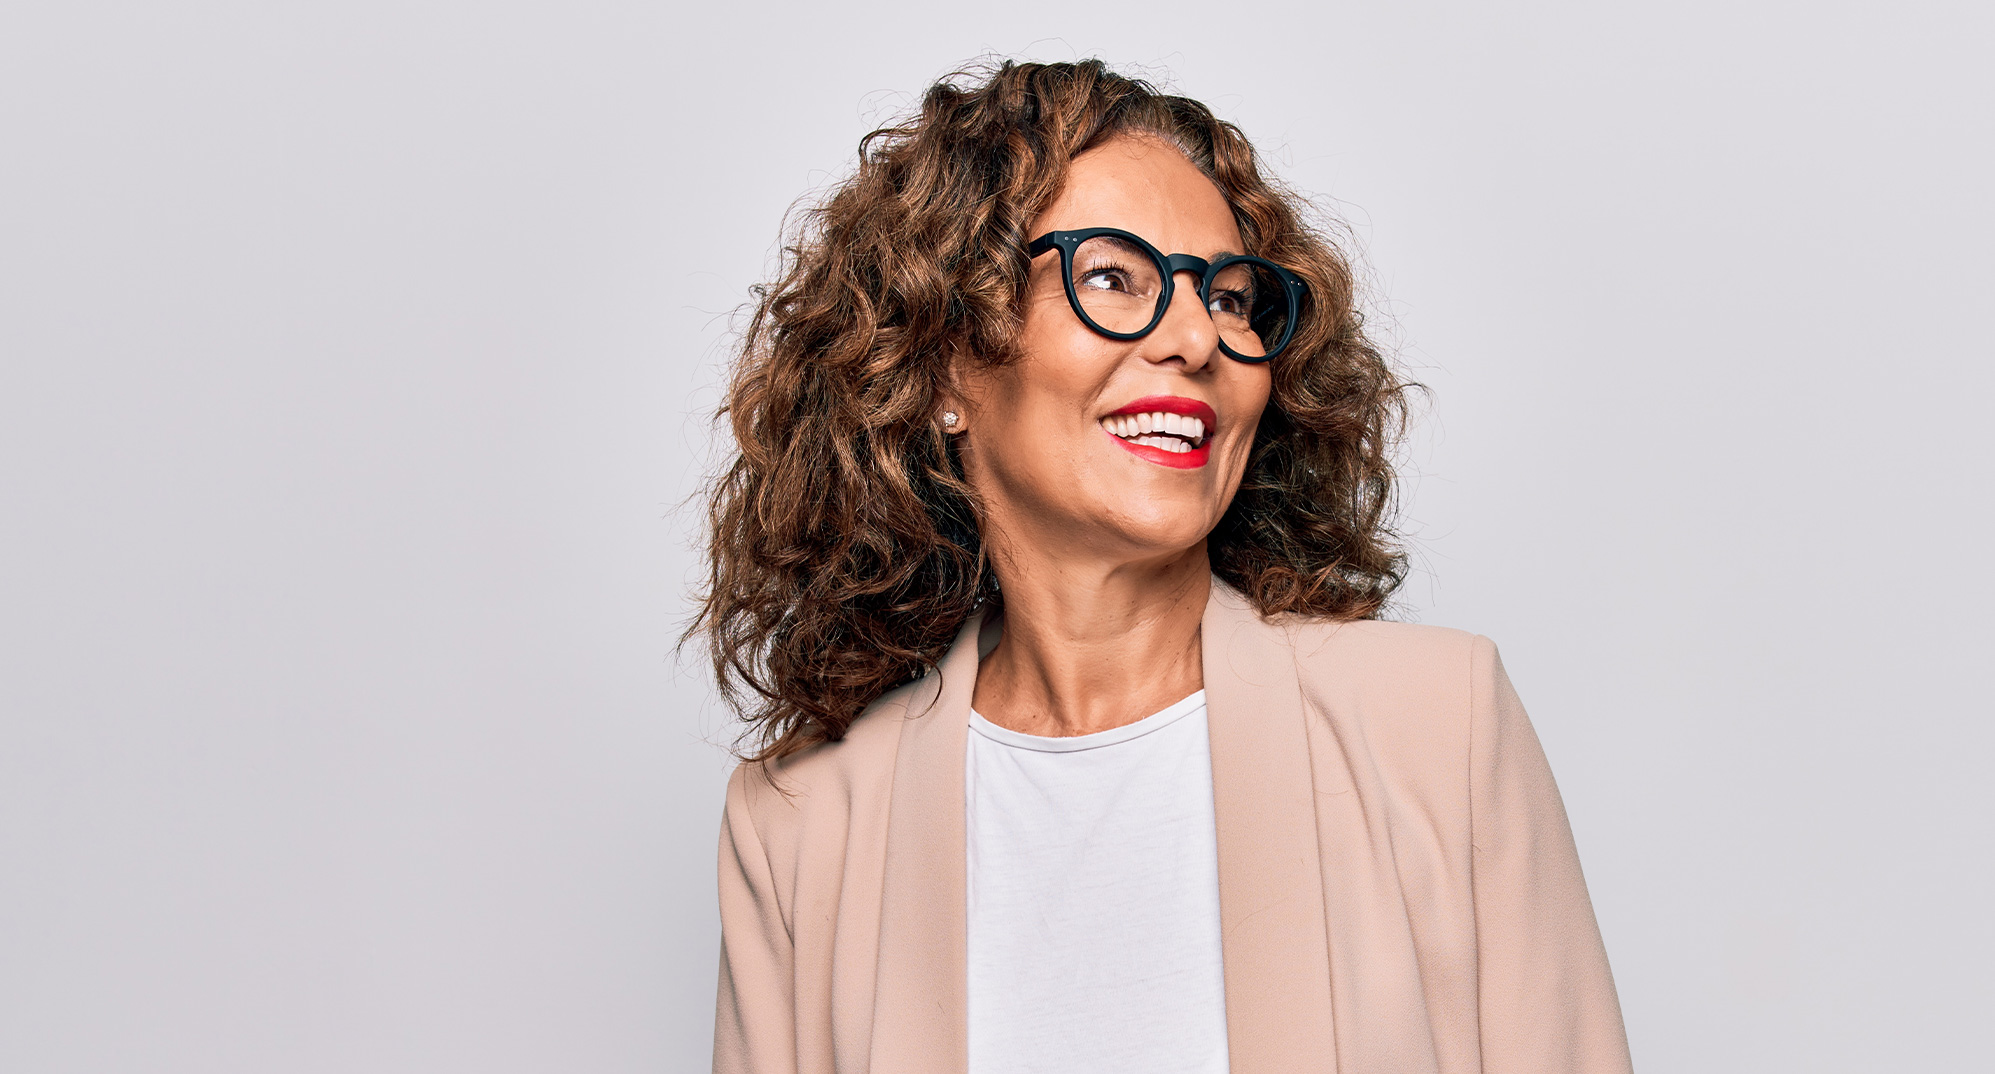 Mature woman wearing glasses with progressive lenses